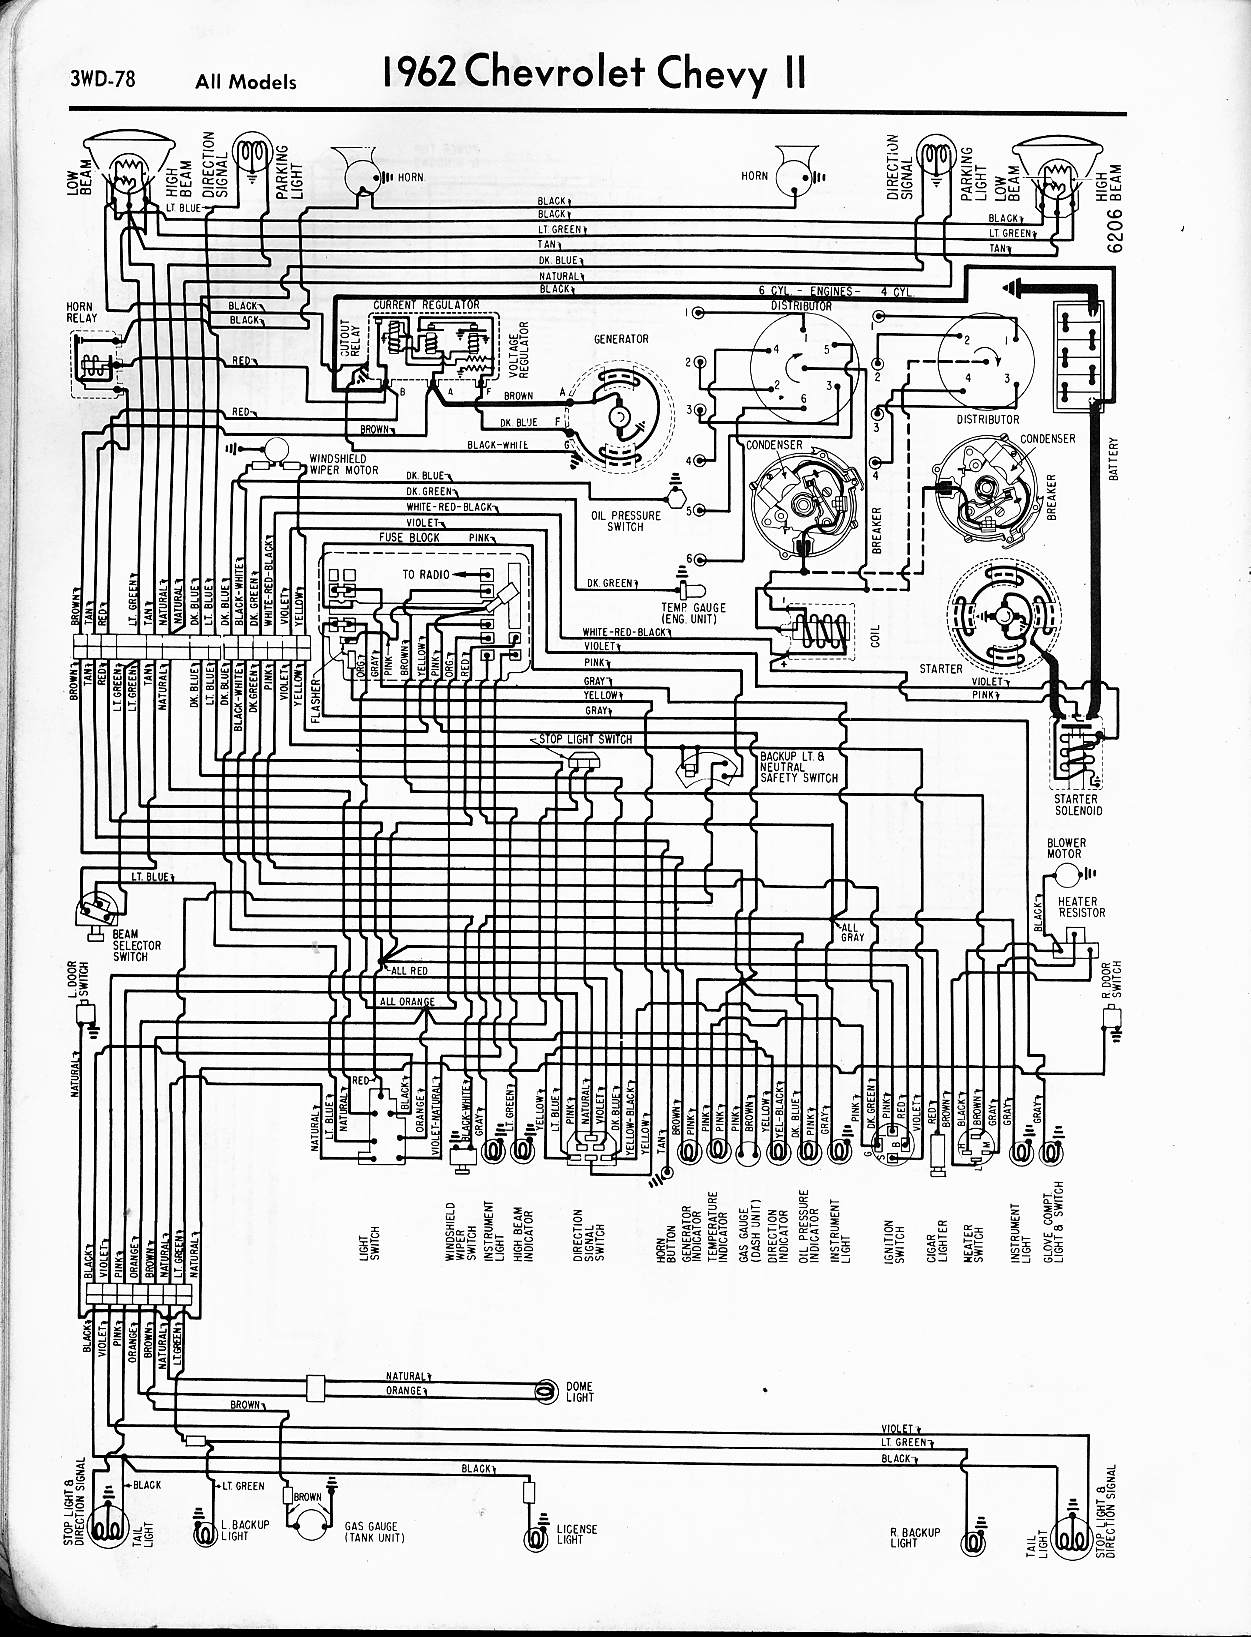 MWireChev62_3WD 078 1963 c10 pickup wiring diagram pdf chevy wiring diagrams \u2022 free 67 Chevy 2 Nova at fashall.co